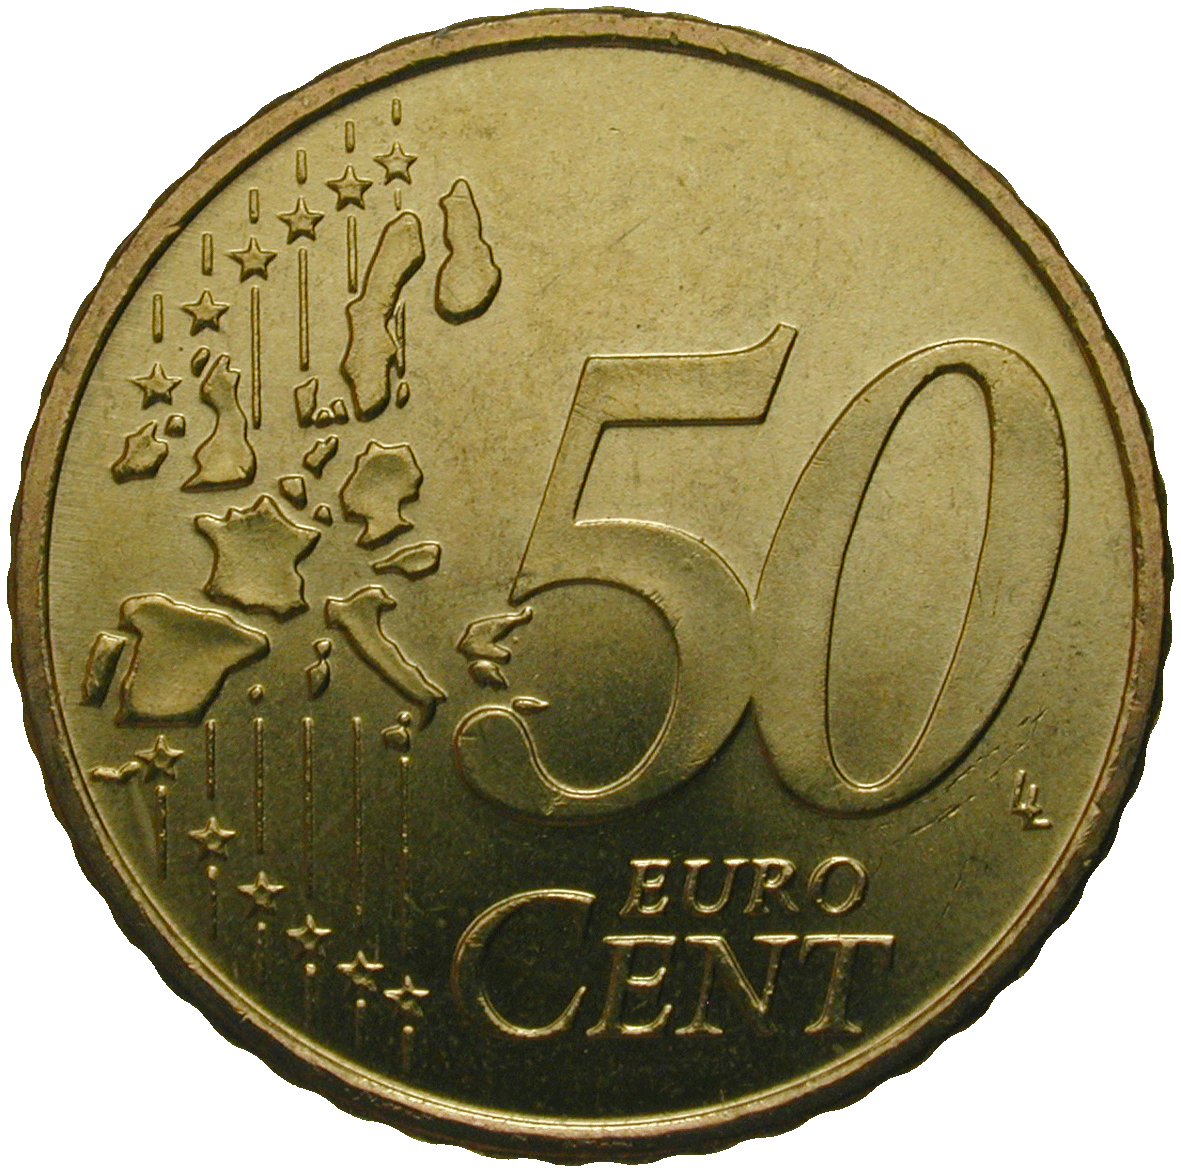 Republic of Greece, 50 Euro Cent 2002 (reverse)